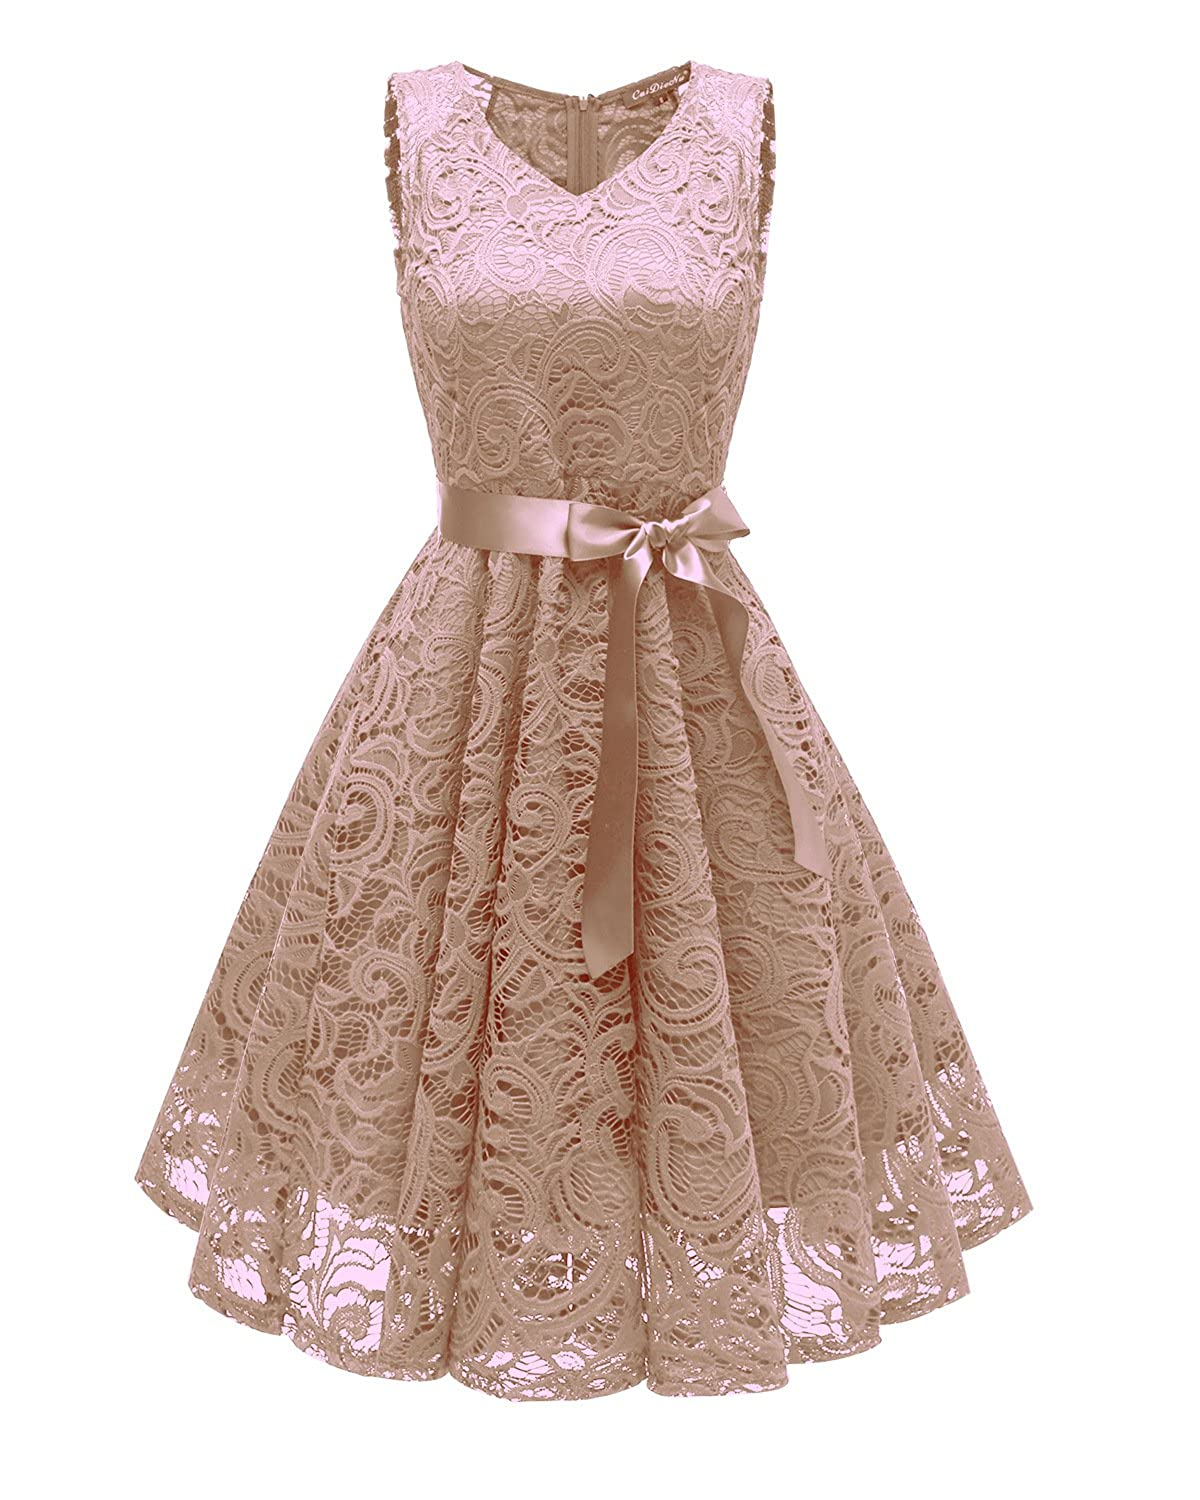 Cecile s Women s V Neck Vintage Lace Prom Wedding Cocktail Party Midi Swing  Dress With Belt Sash at Amazon Women s Clothing store  5d11f3f44